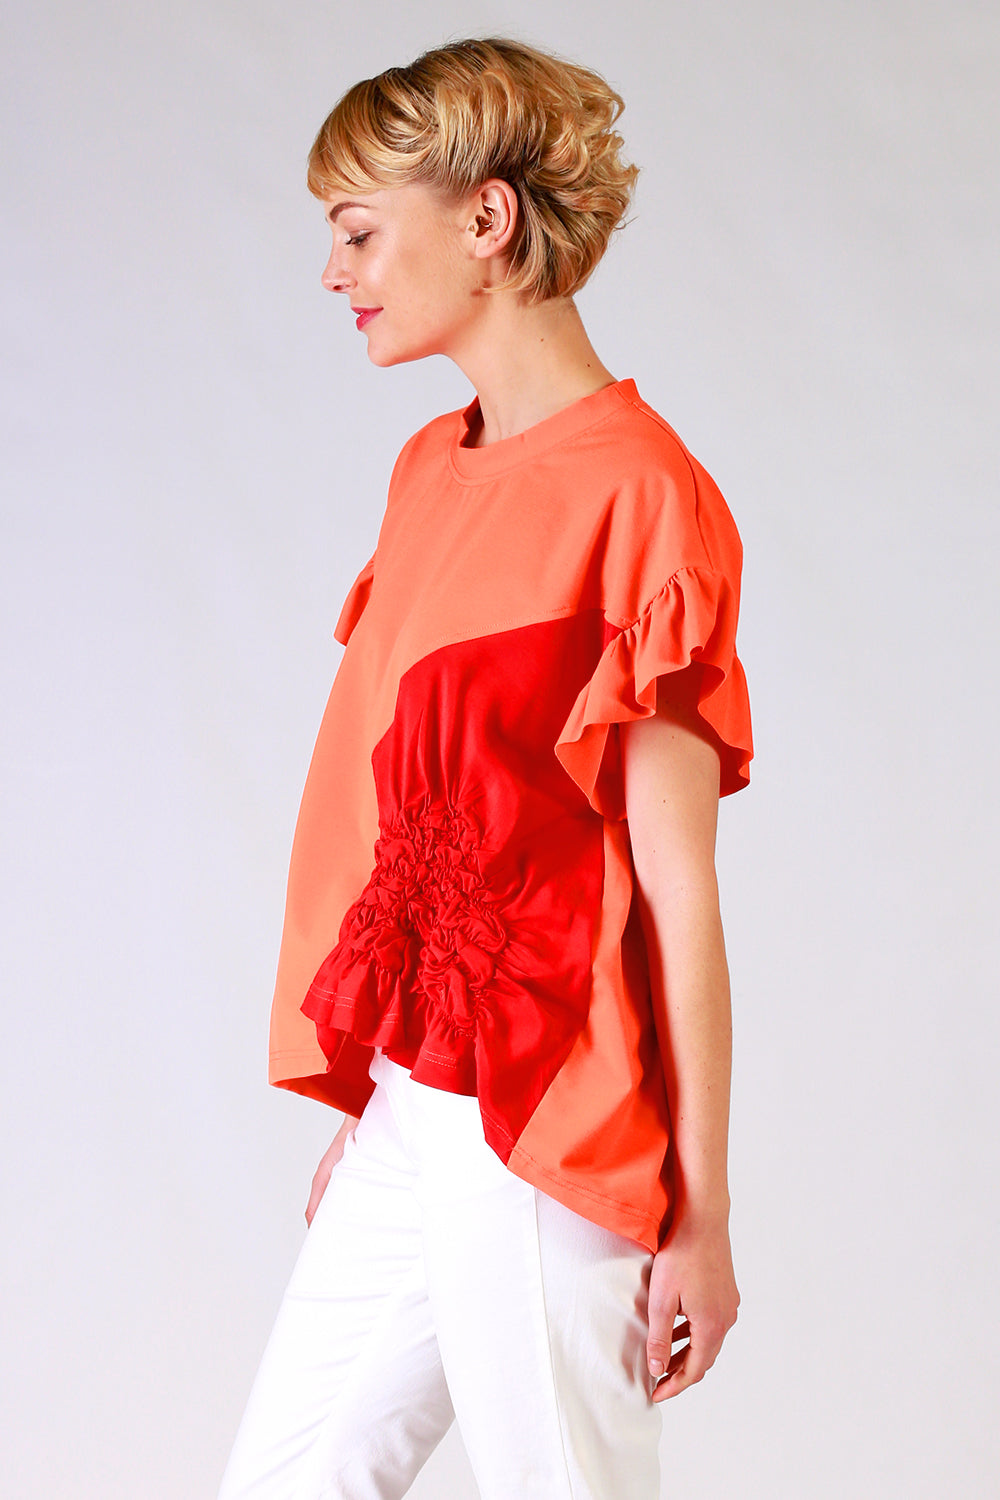 Scrunchie T Shirt | Scrunchie Tee | Orange Tee | Summer 19 | Annah Stretton Fashion NZ